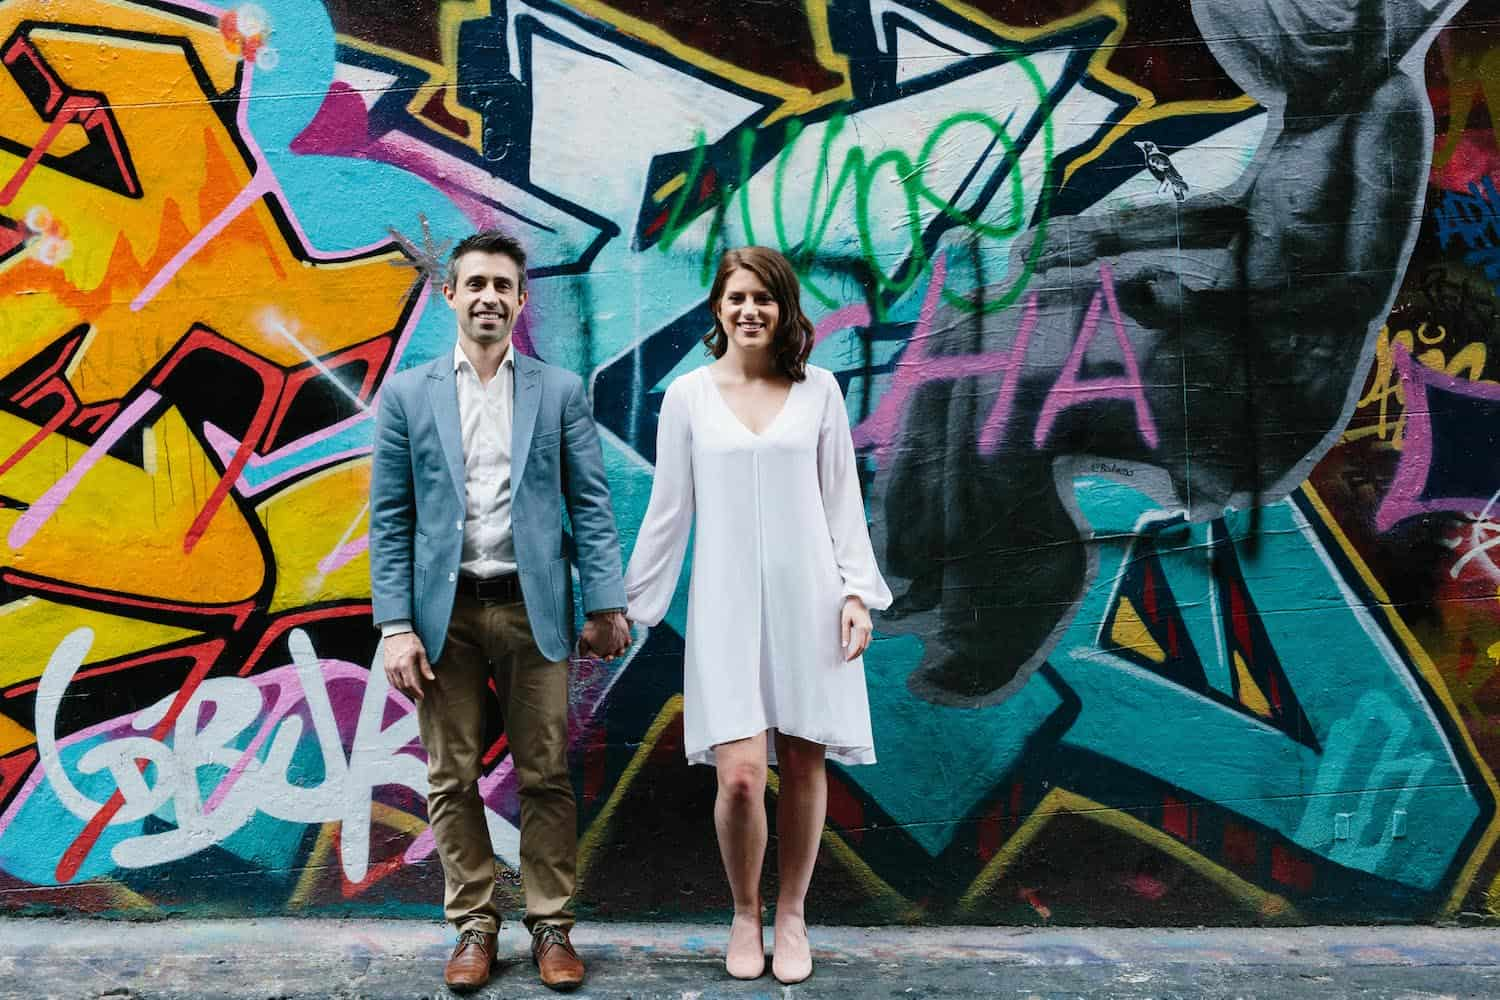 Engagement Photographer Melbourne Graffiti Walk Hosier Lane and Hardware Lane Engagement Shoot with Quila and Dave 4